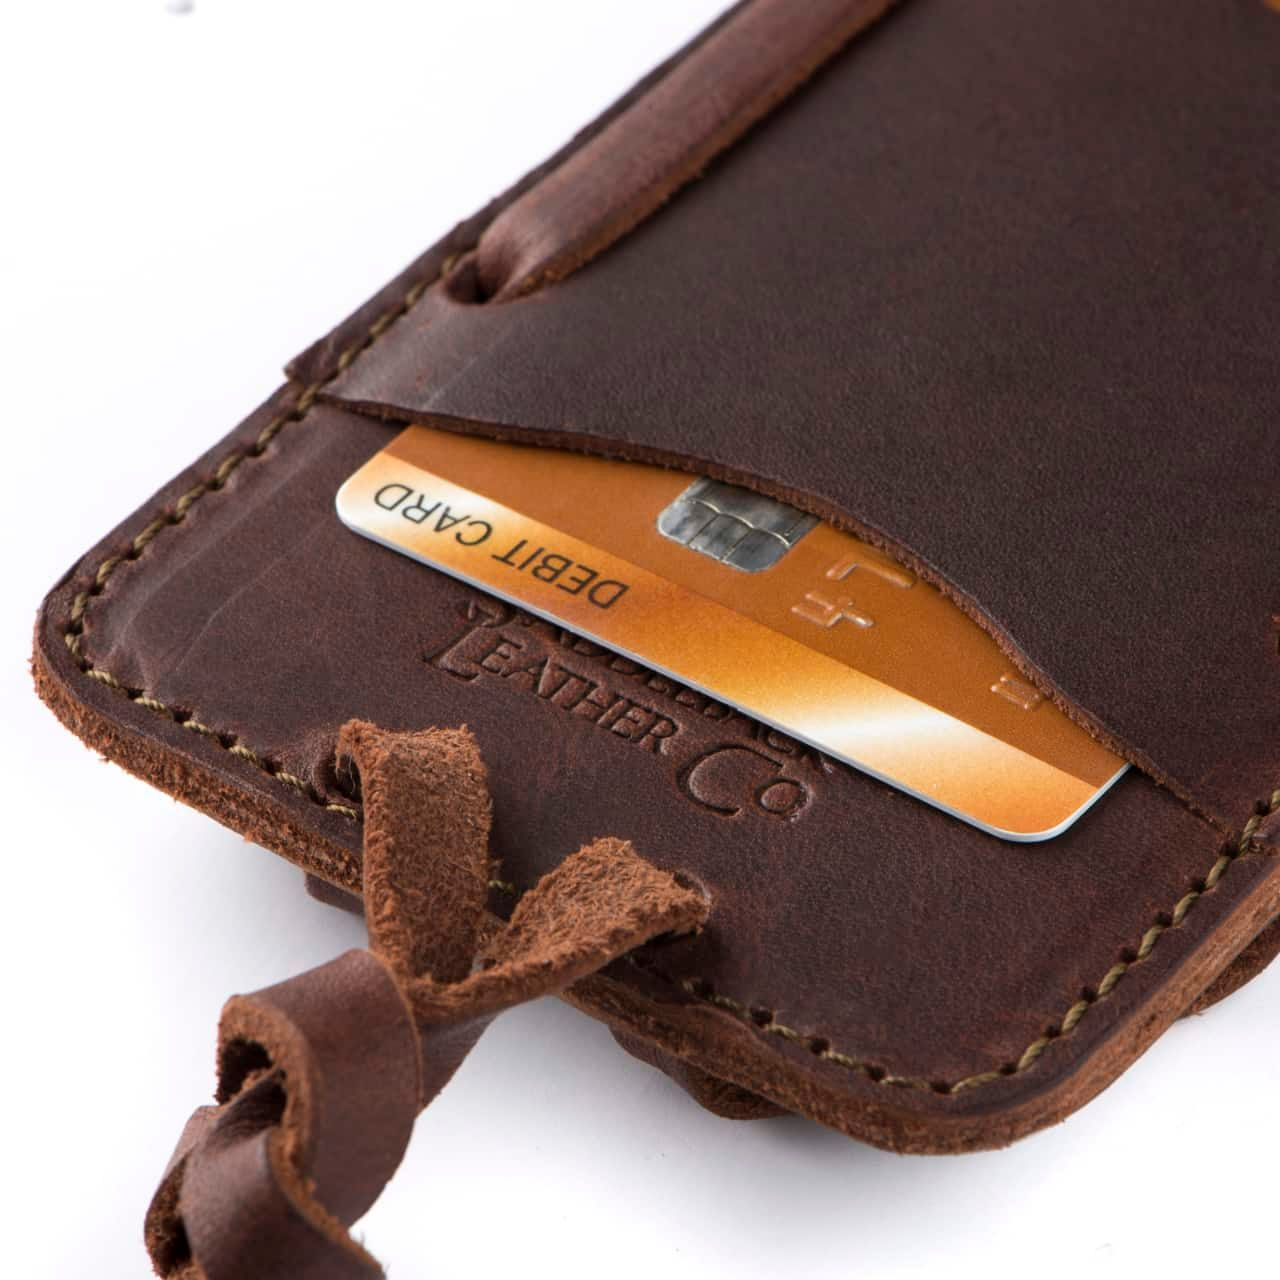 Leather iPhone 8 Case in Color Chestnut Zoomed in on the Saddleback Logo and Card Slot with a Card